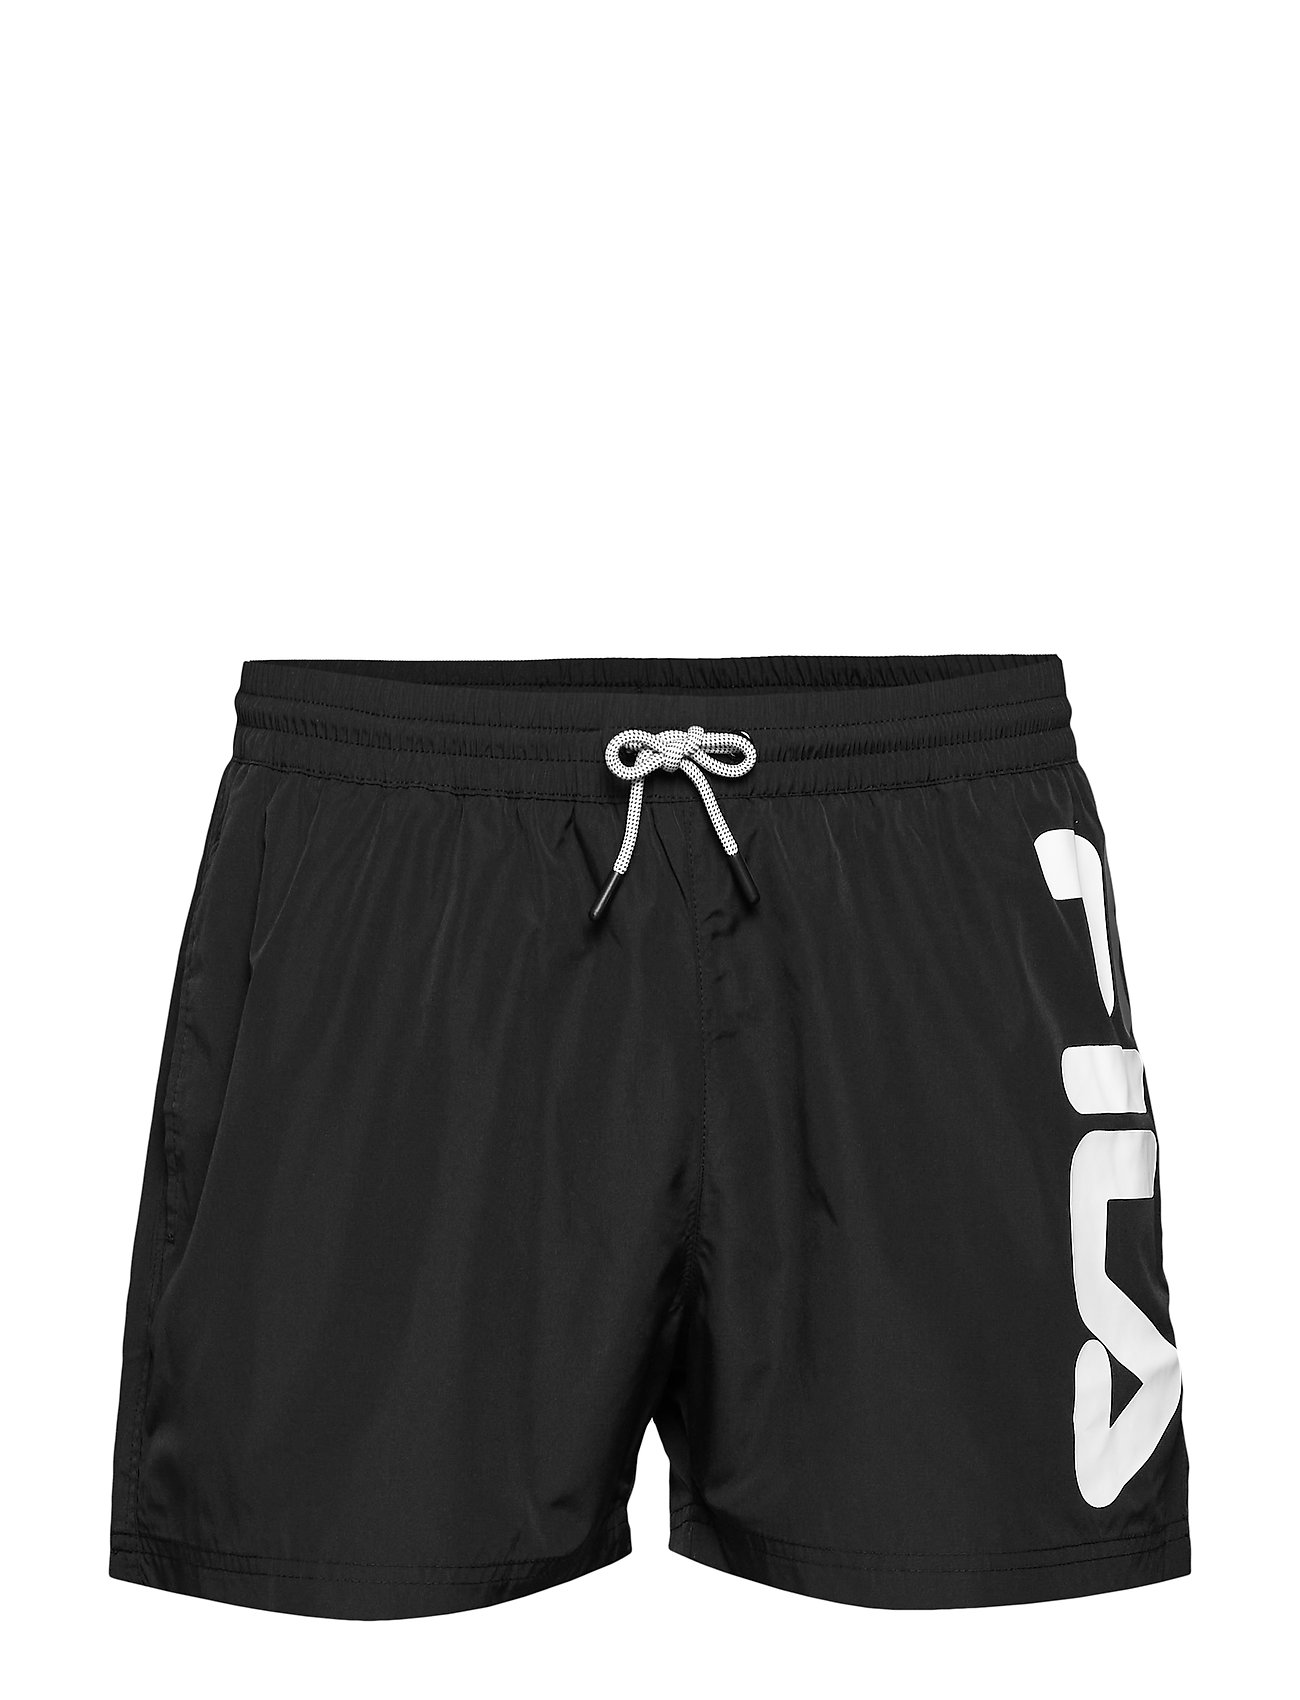 Image of Men Michi Beach Shorts Badeshorts Sort FILA (3372506153)